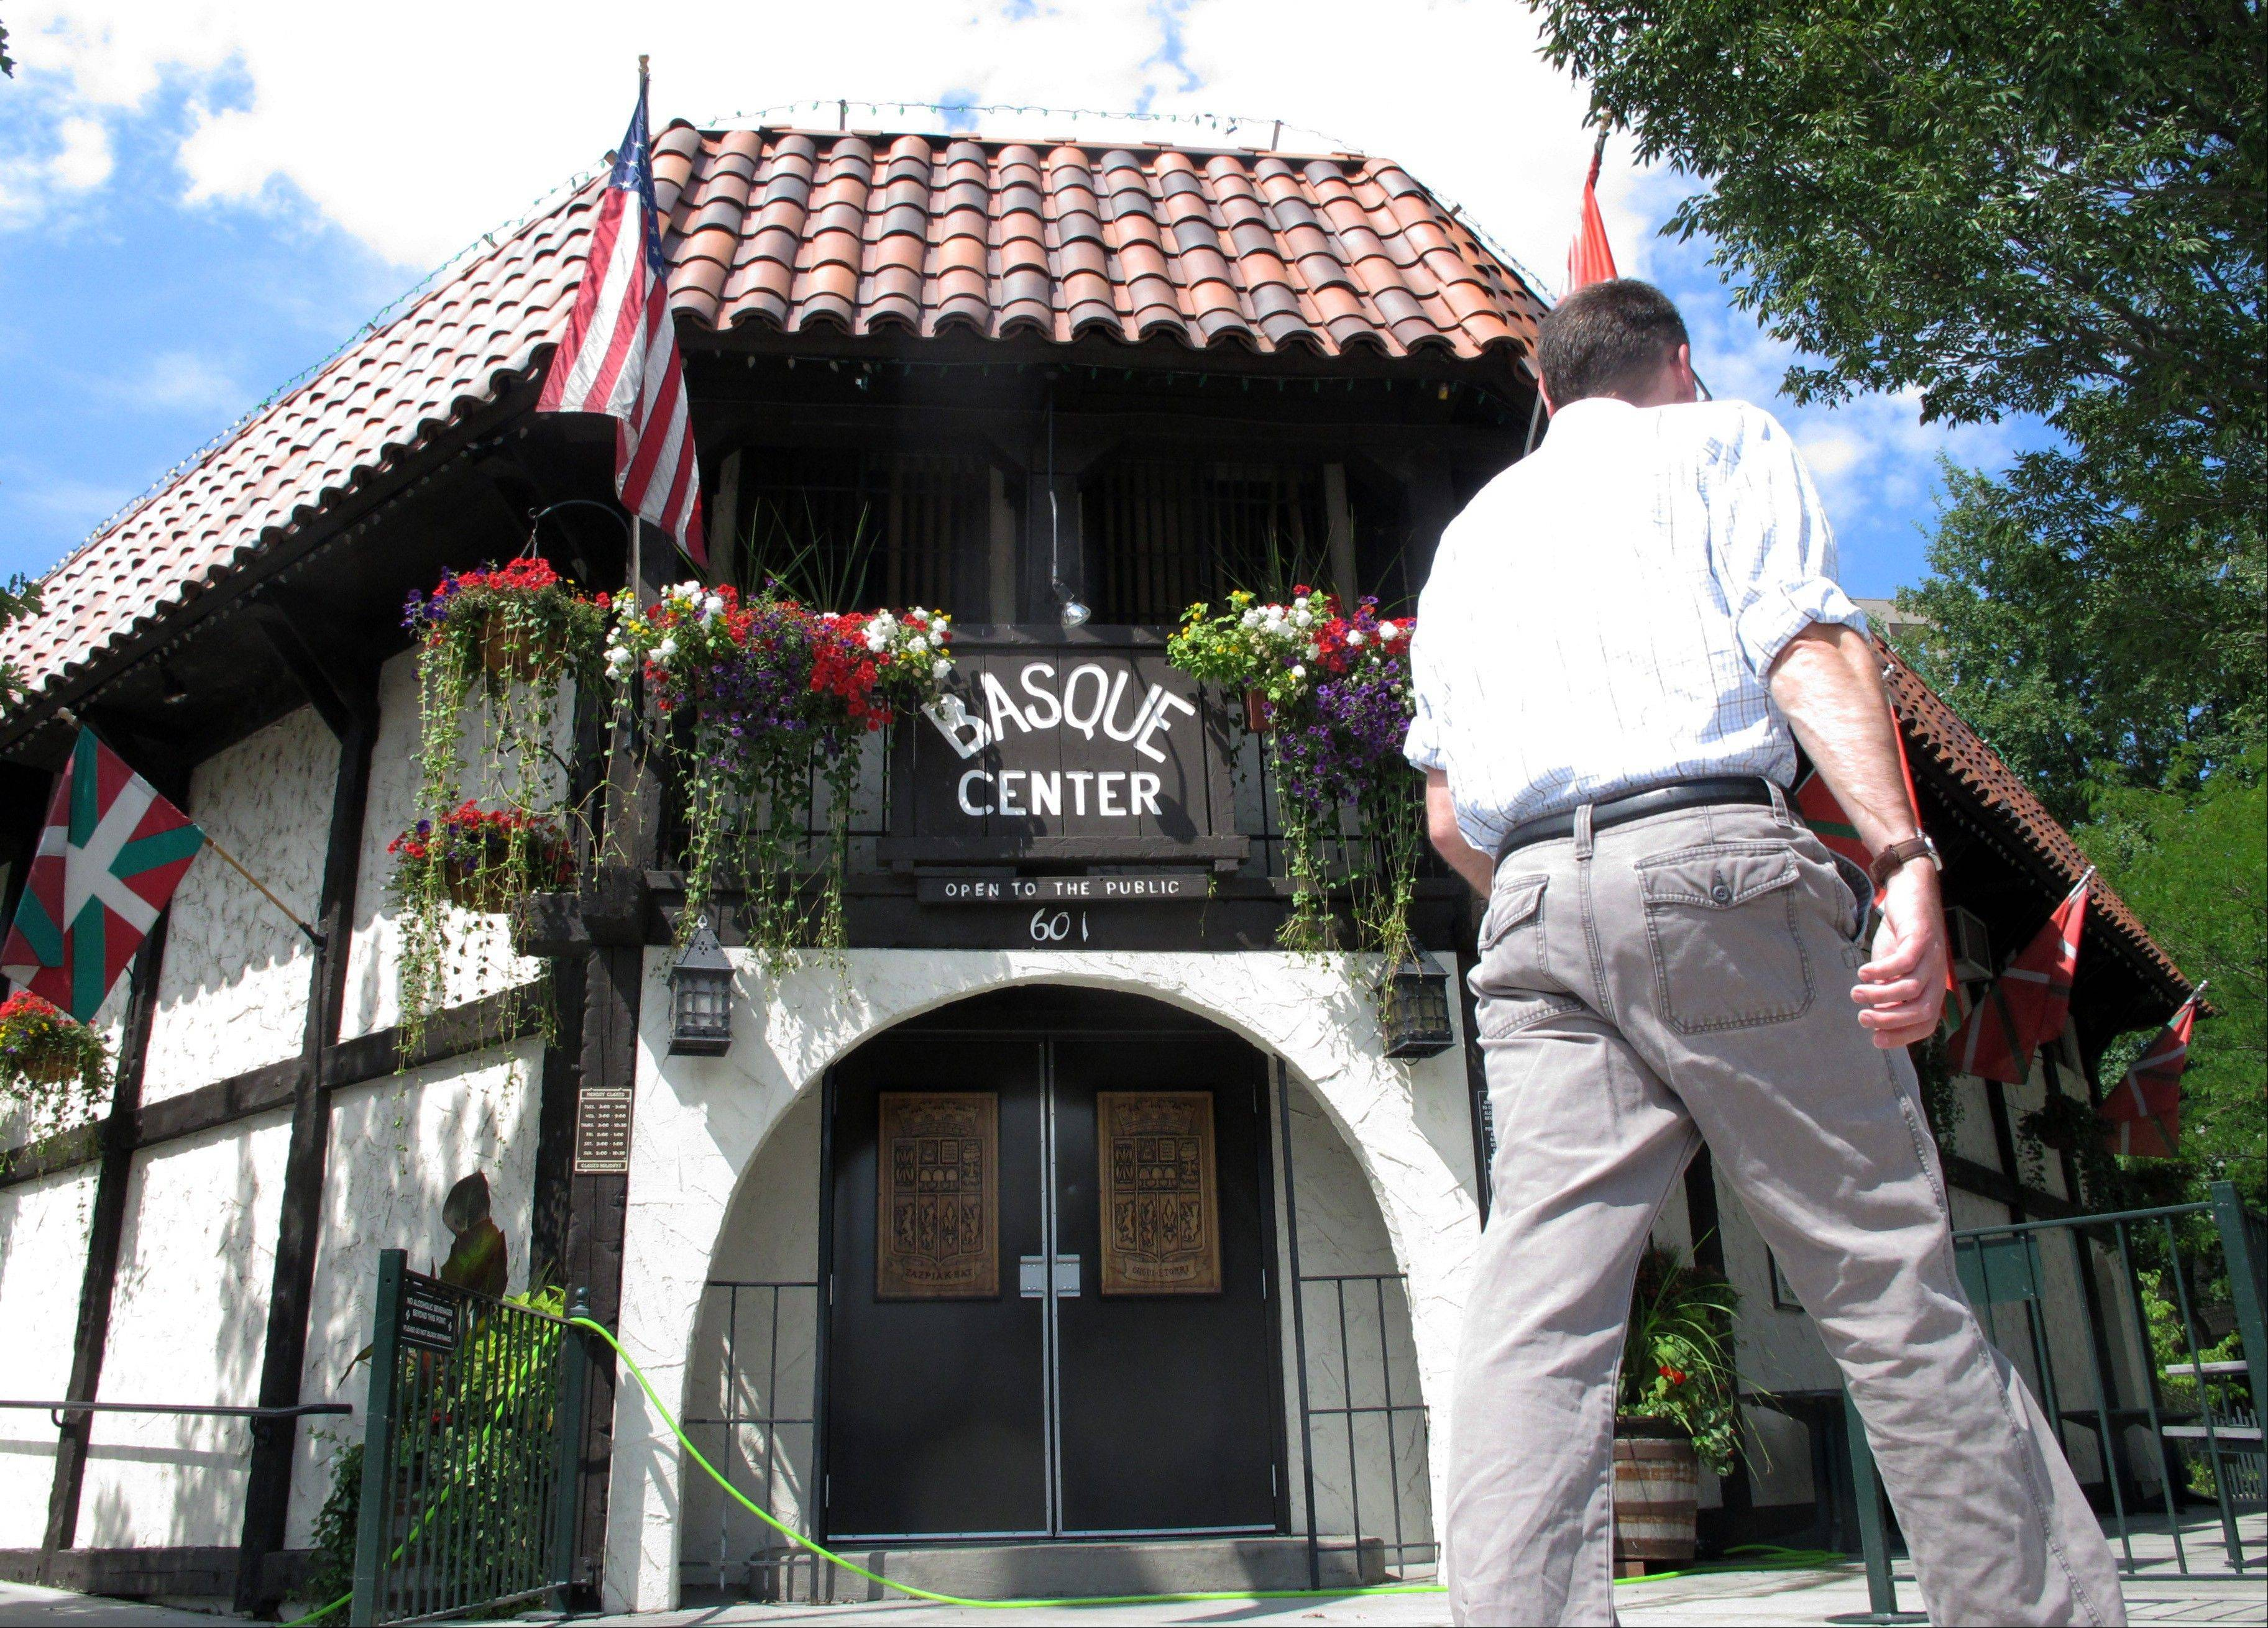 A man walks in front of the Basque Center, which is a gathering place for Boise's Basque community and one of several stops in the city's downtown Basque Block.